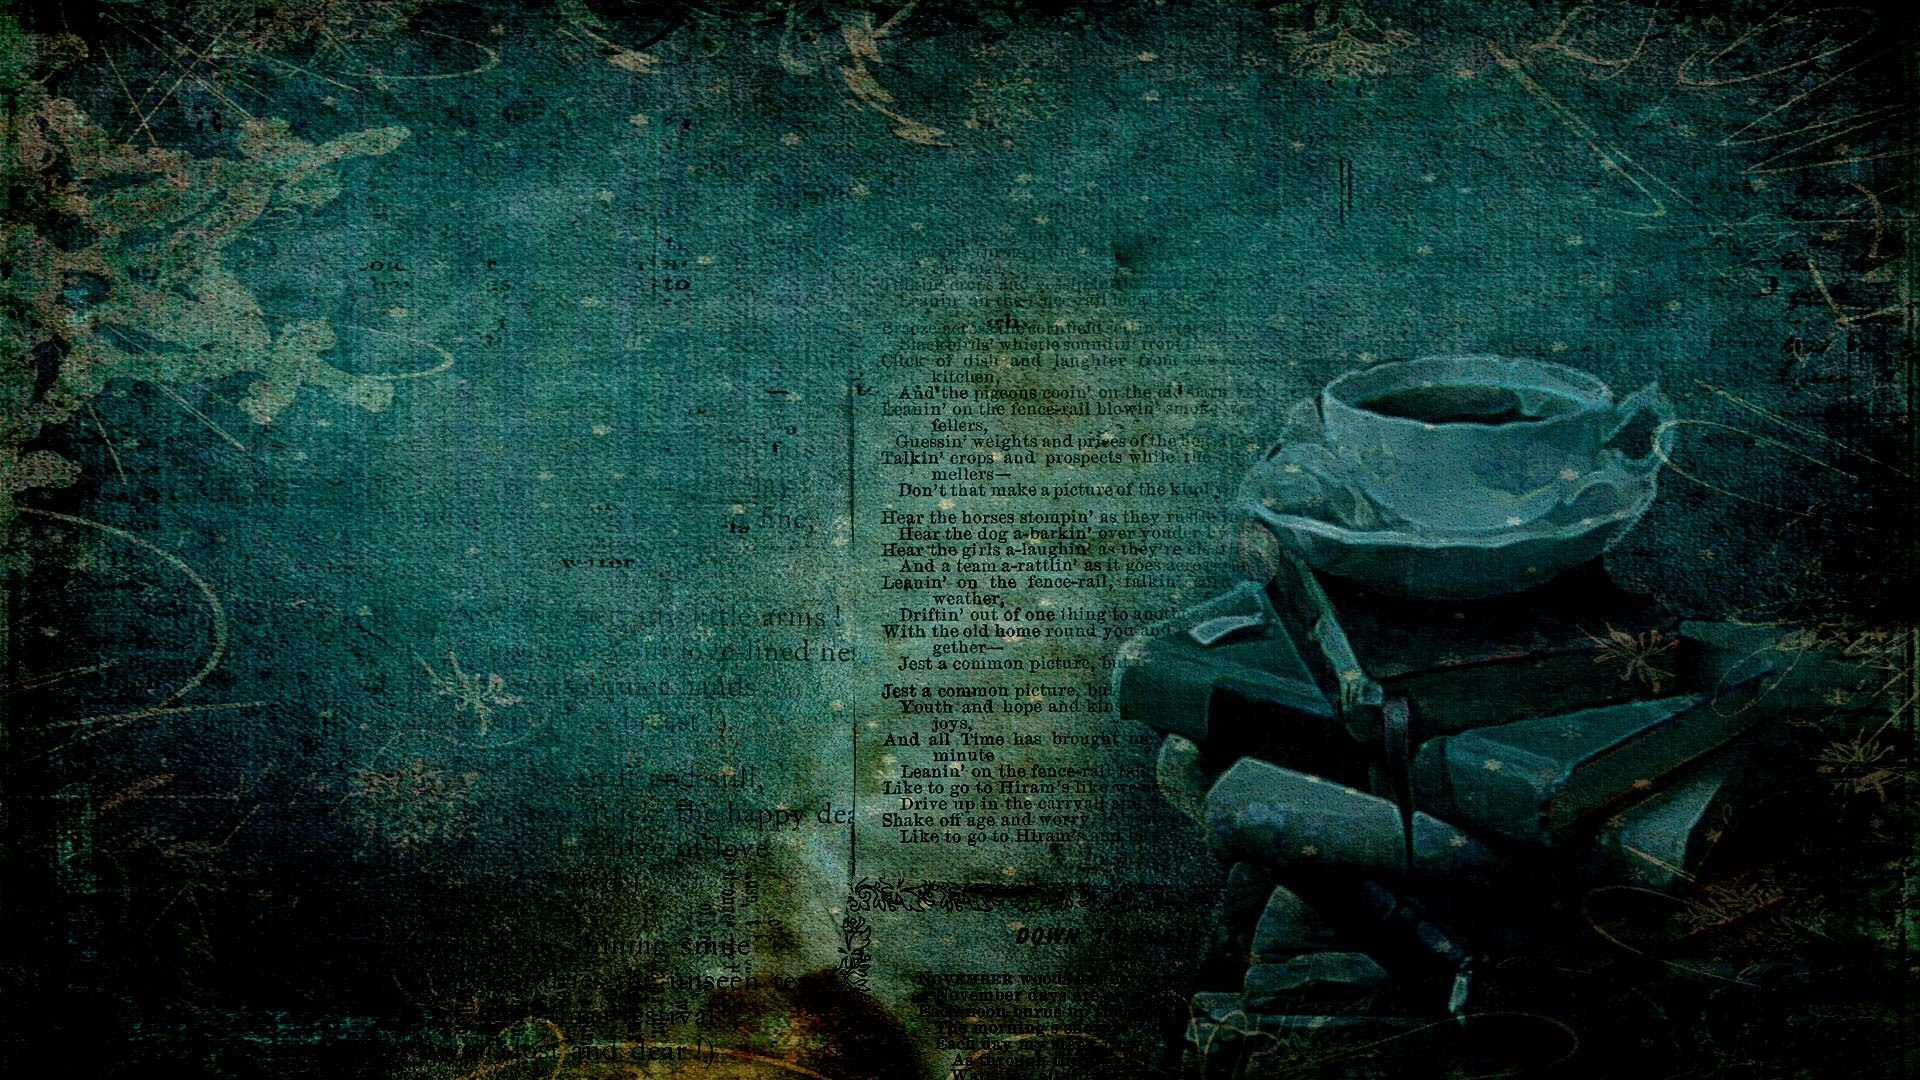 An image of tea cups and stacked books and faded words on a page